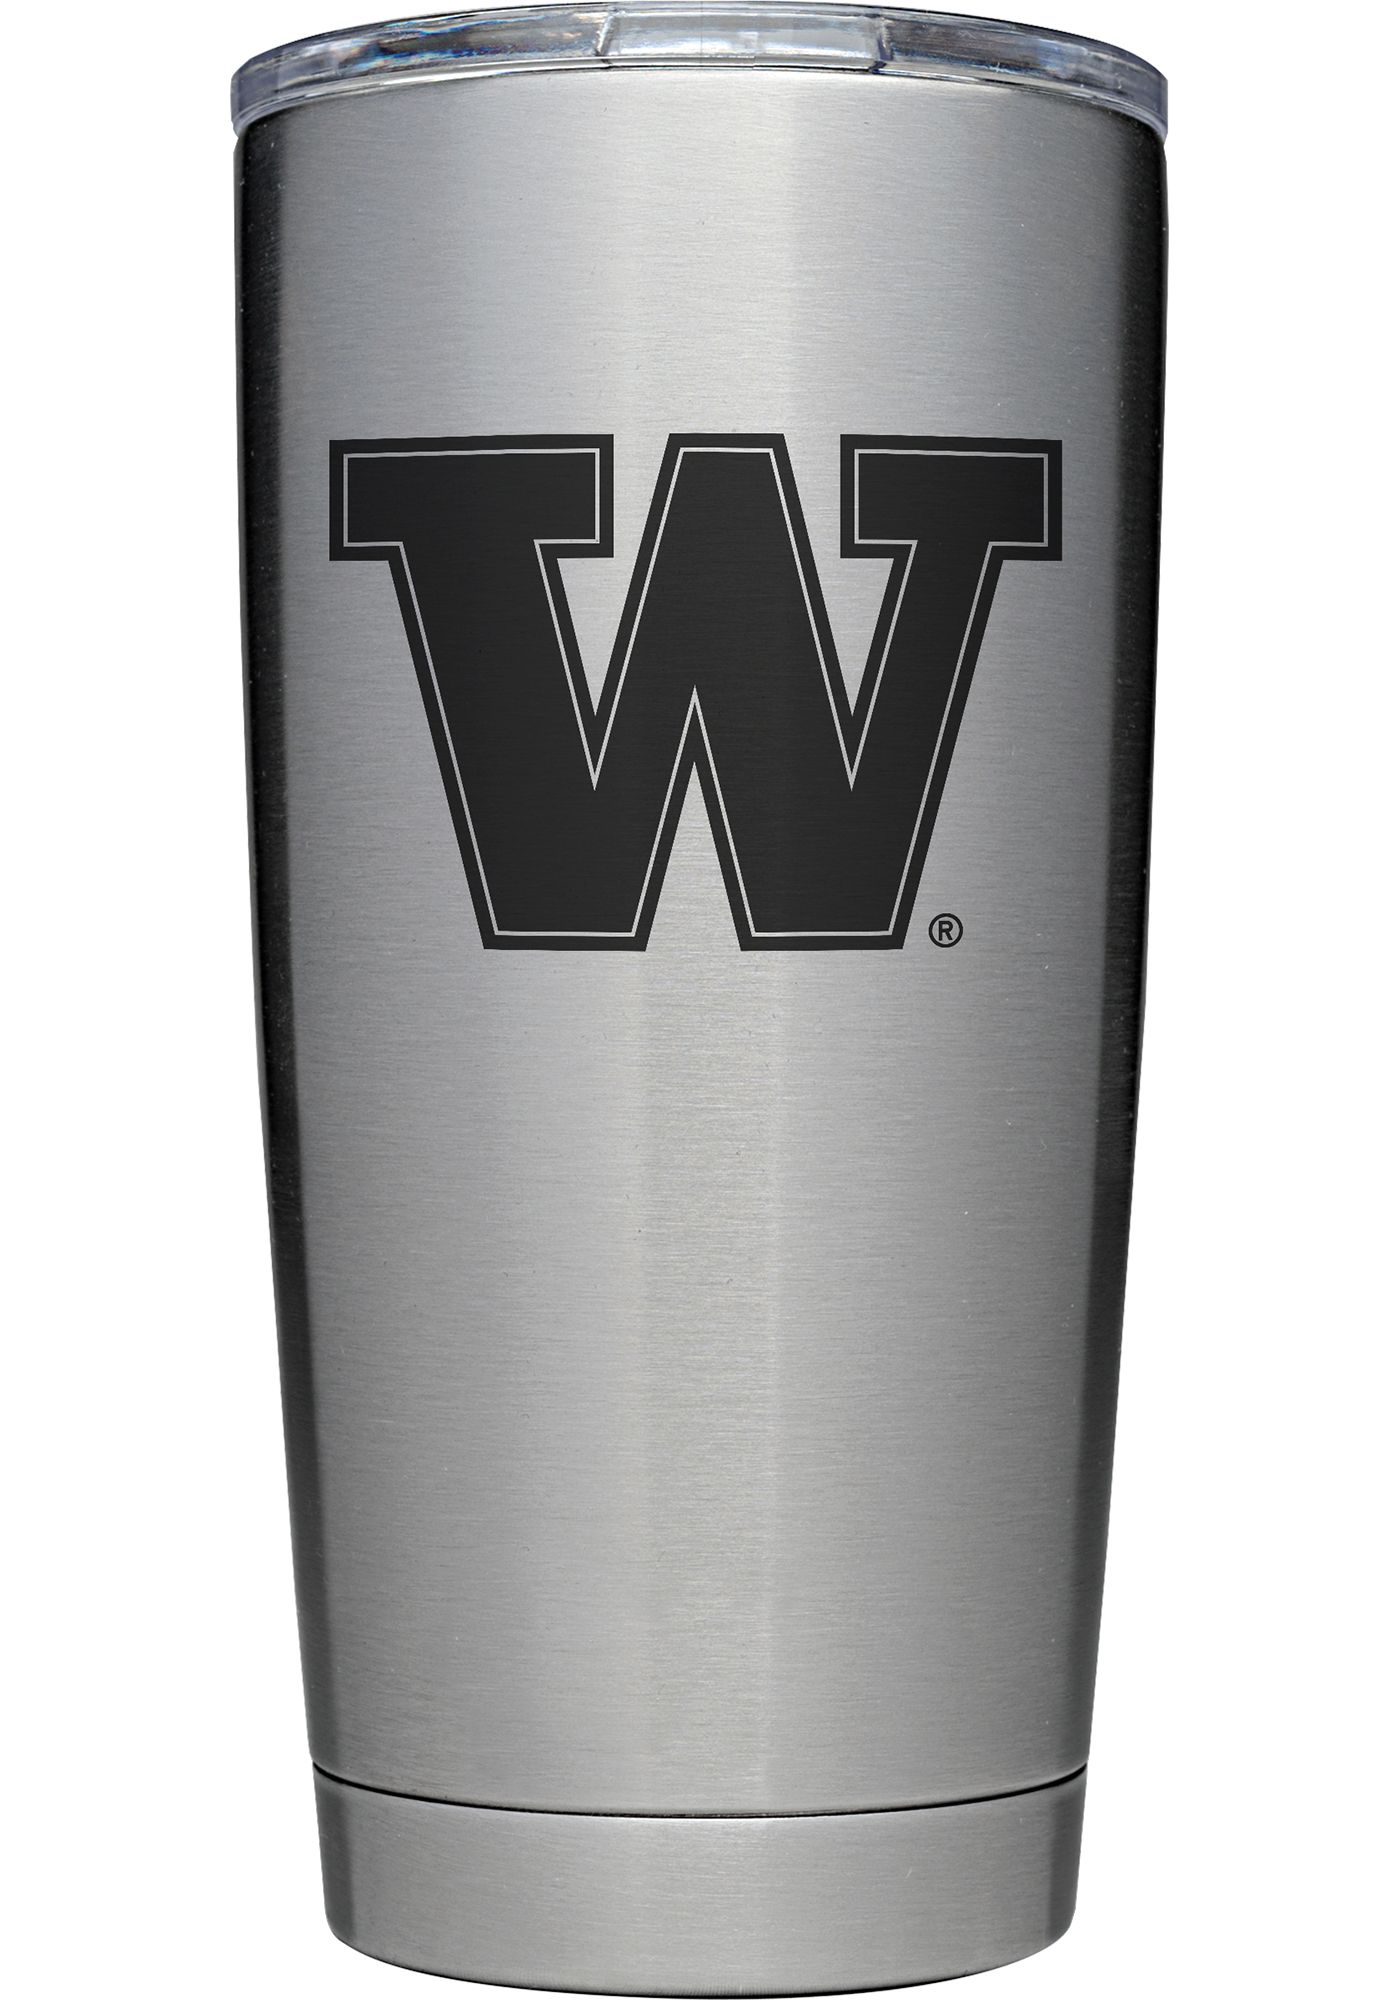 YETI Washington Huskies 20 oz. Rambler Tumbler with MagSlider Lid